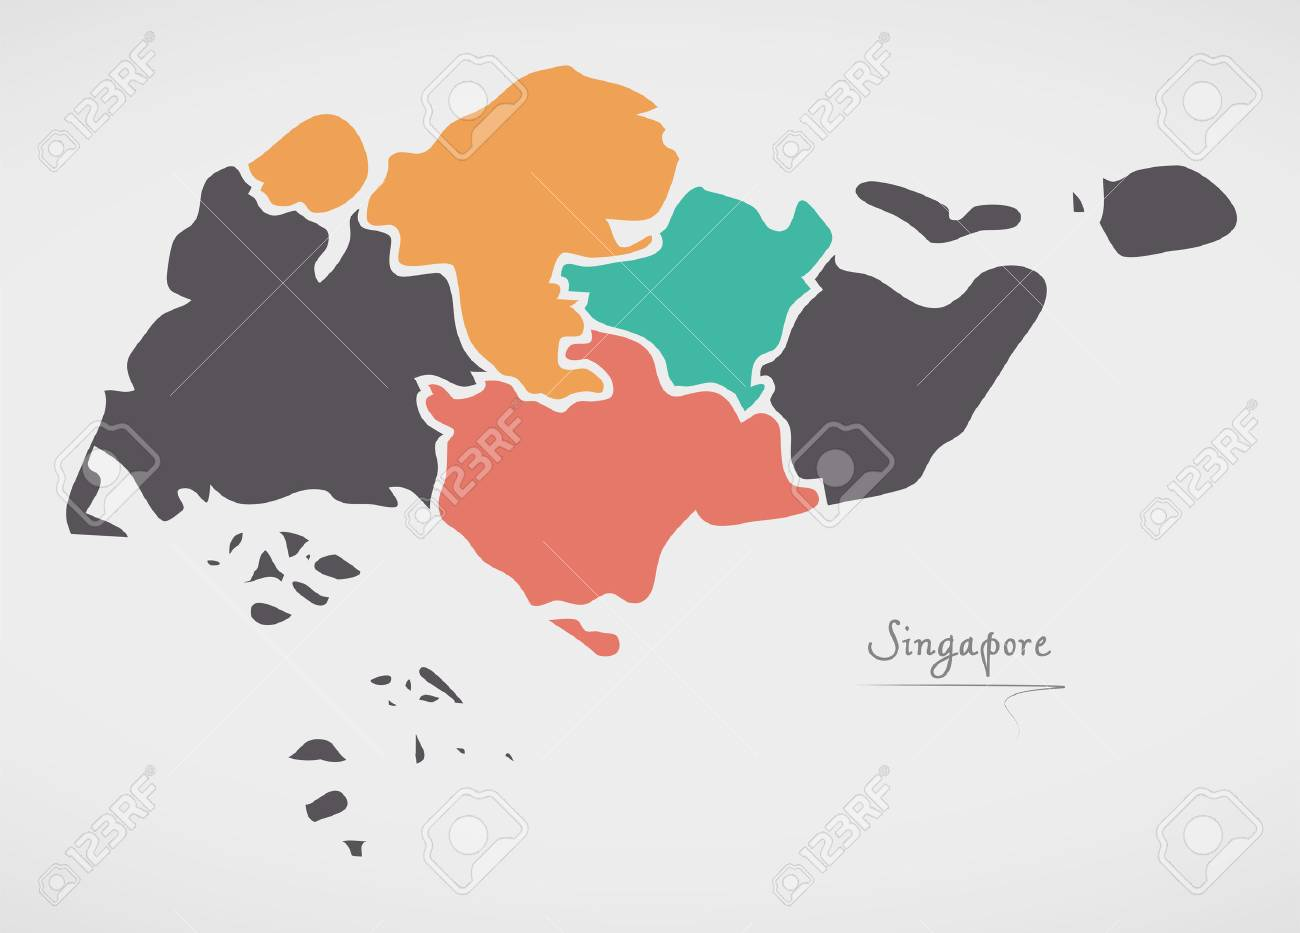 Singapore Map with states and modern round shapes - 80721611